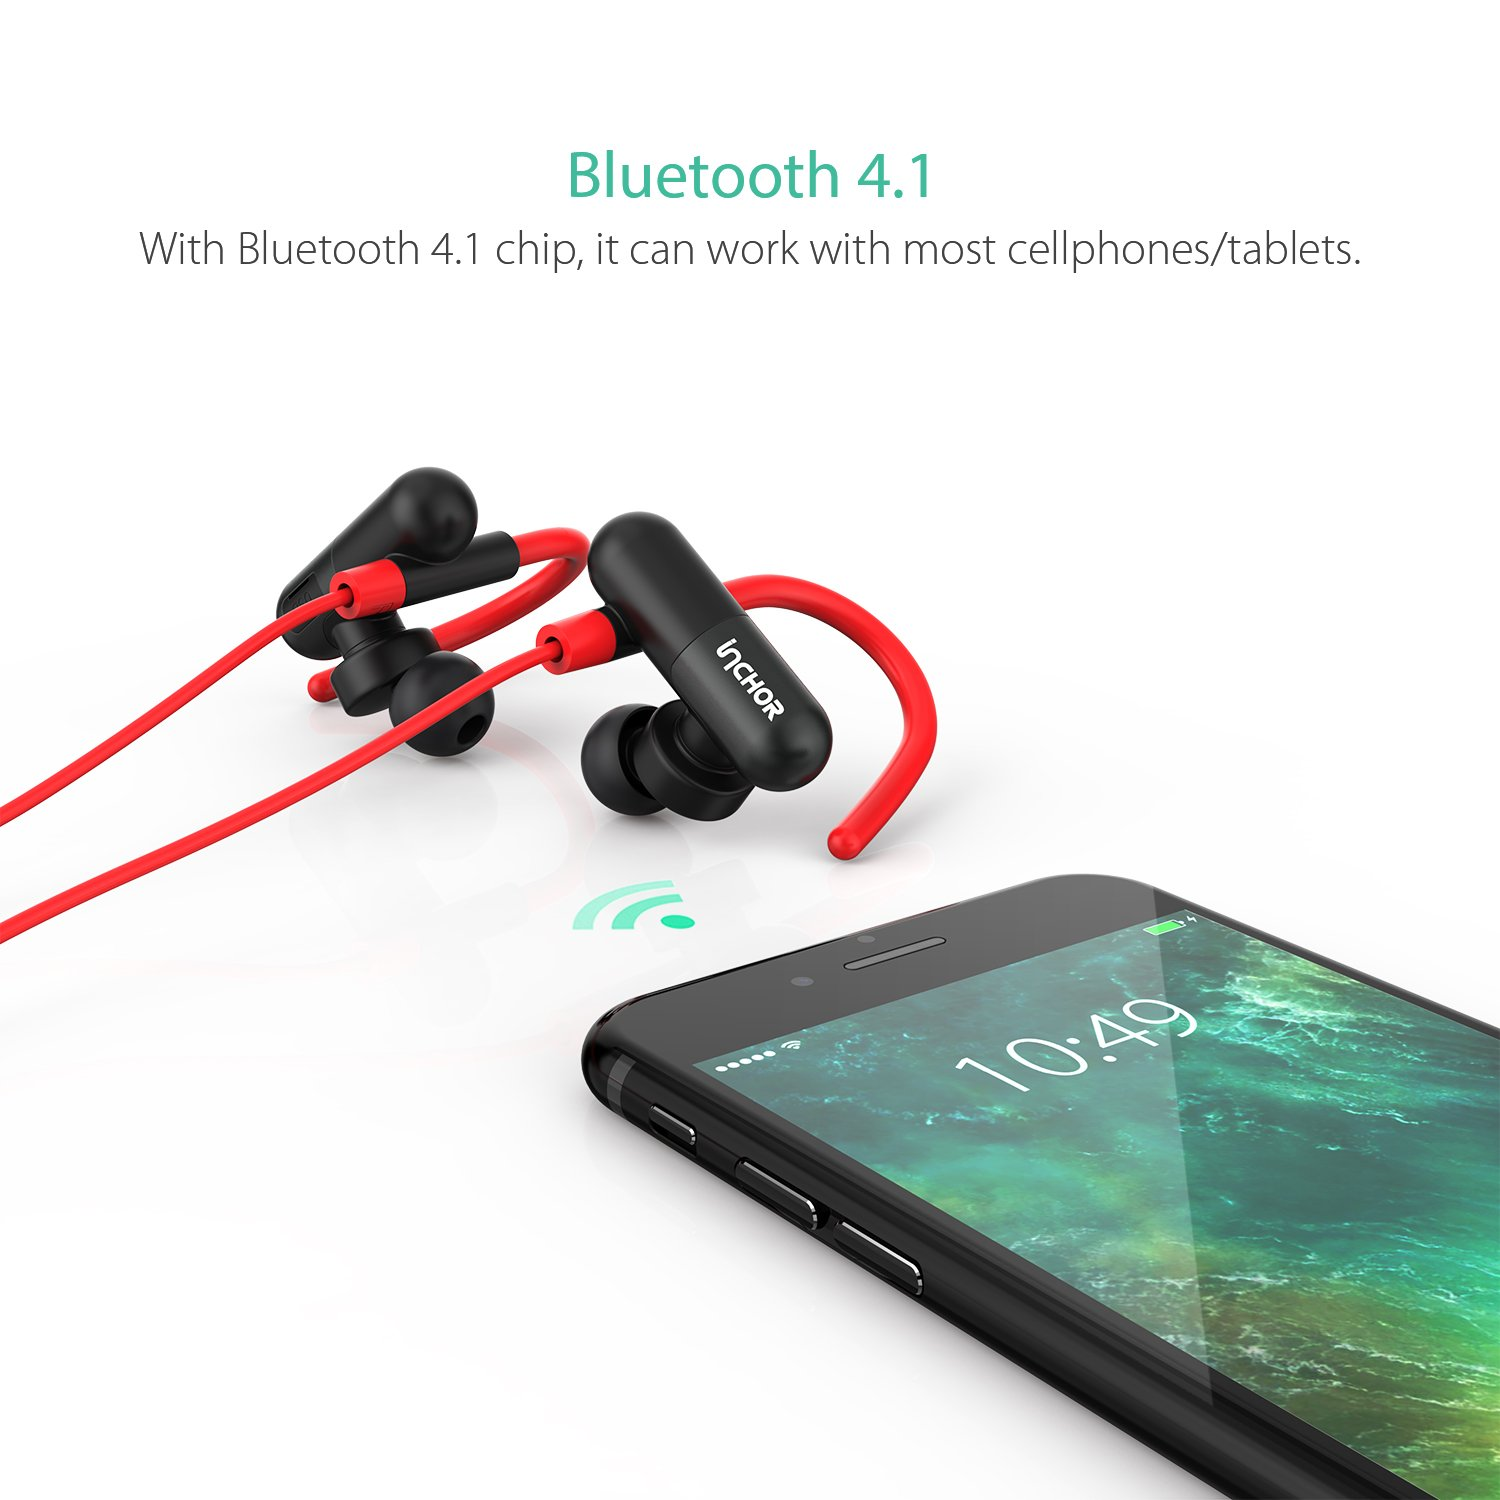 Amazon.com: Bluetooth Stereo Headphones Wireless Earbuds Audifonos Bluetooth with Mic Inchor Noise Cancelling, 7 Hours Playtime Wireless Sport headsets ...